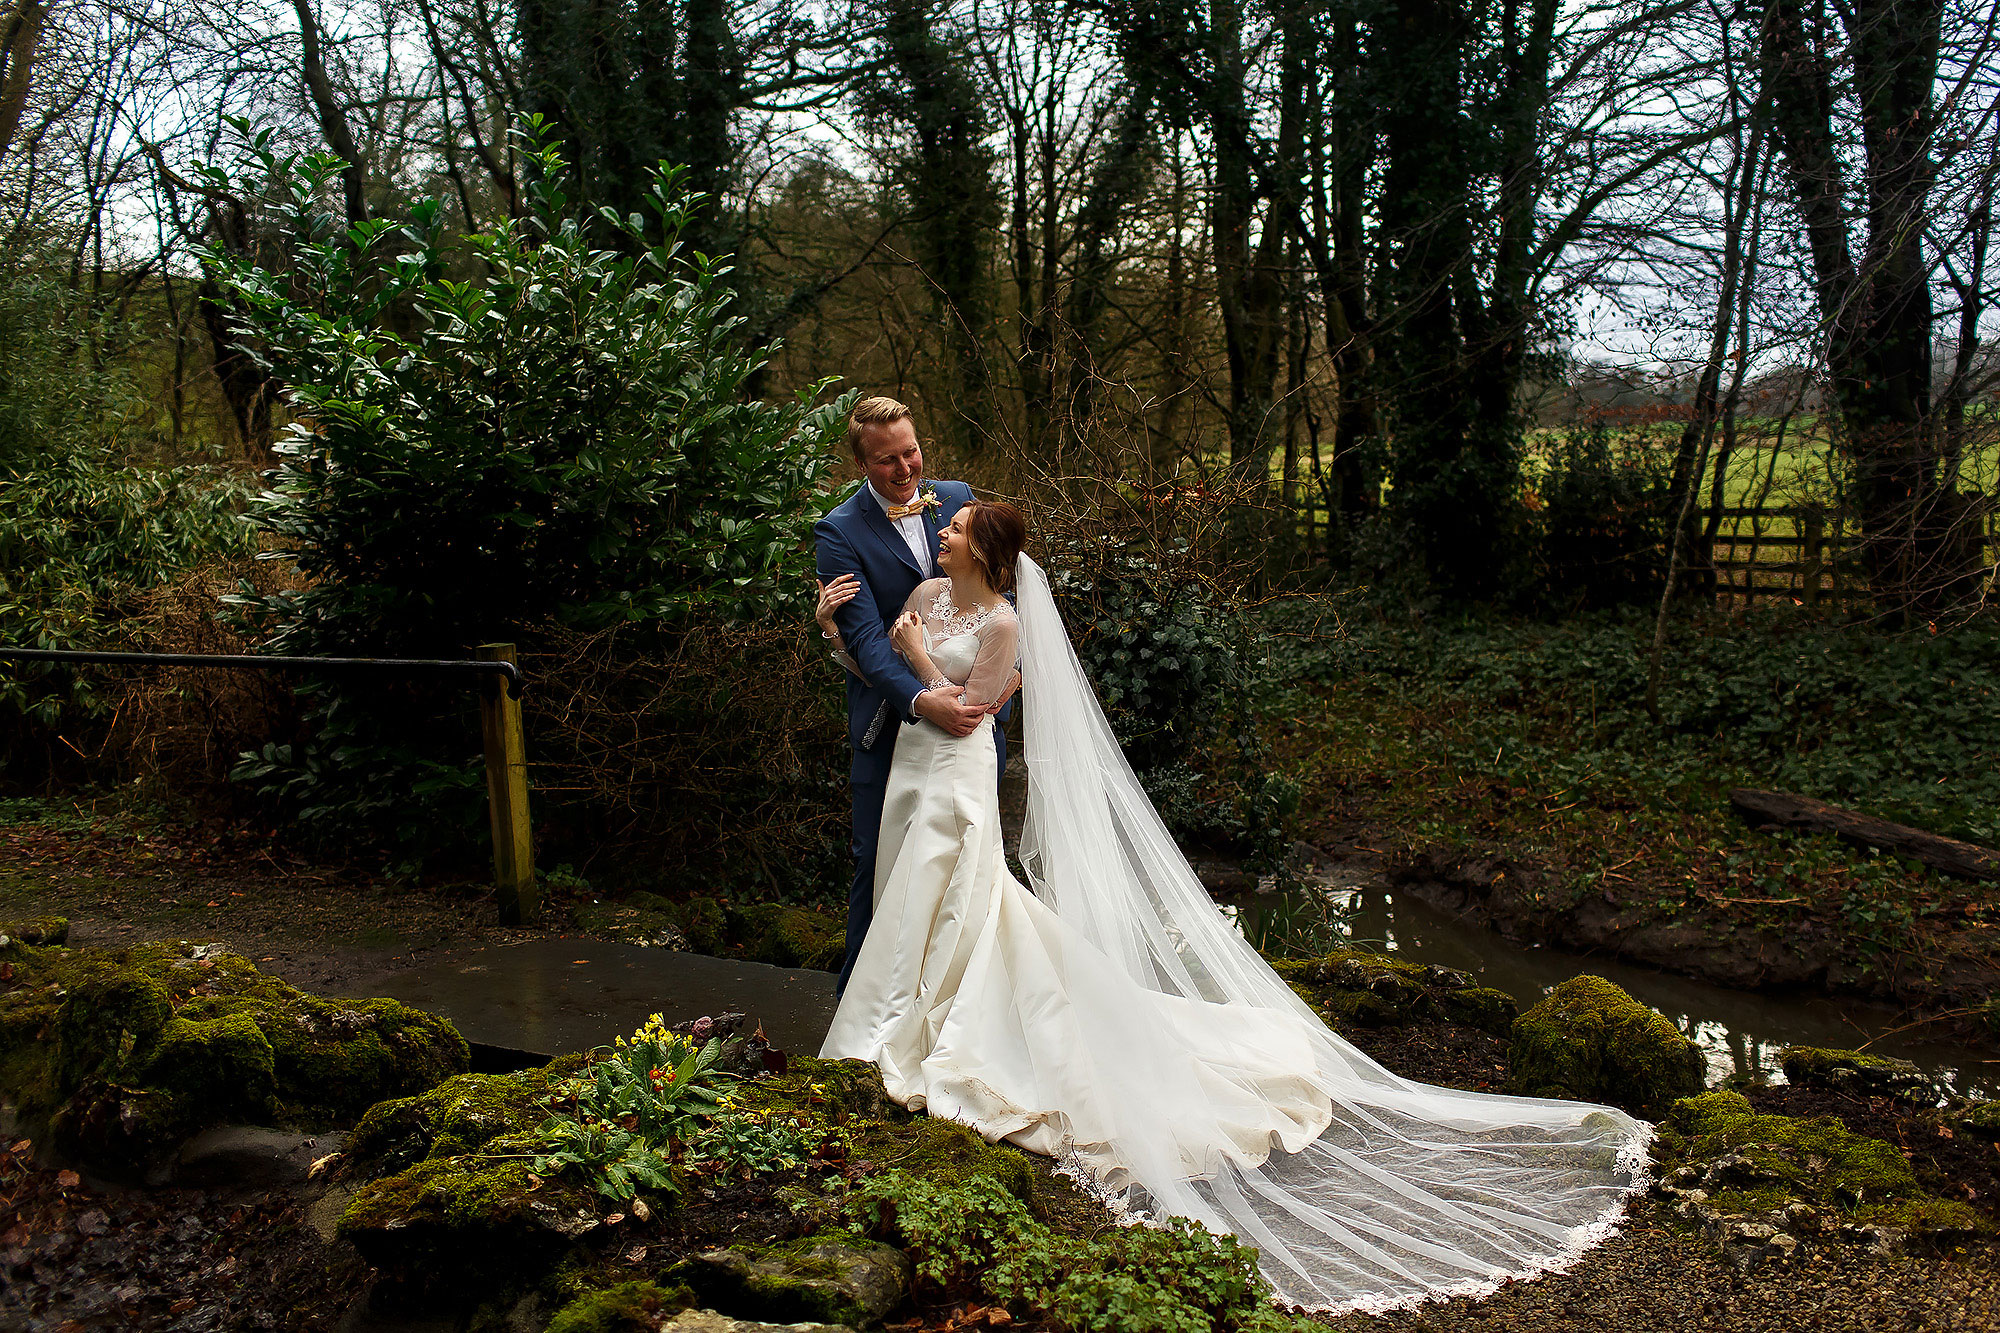 Bride and groom in the woodland gardens of Mitton Hall with long train of wedding dress flowing and long cathedral veil laid our perfectly | Mitton Hall wedding photographs by Toni Darcy Photography